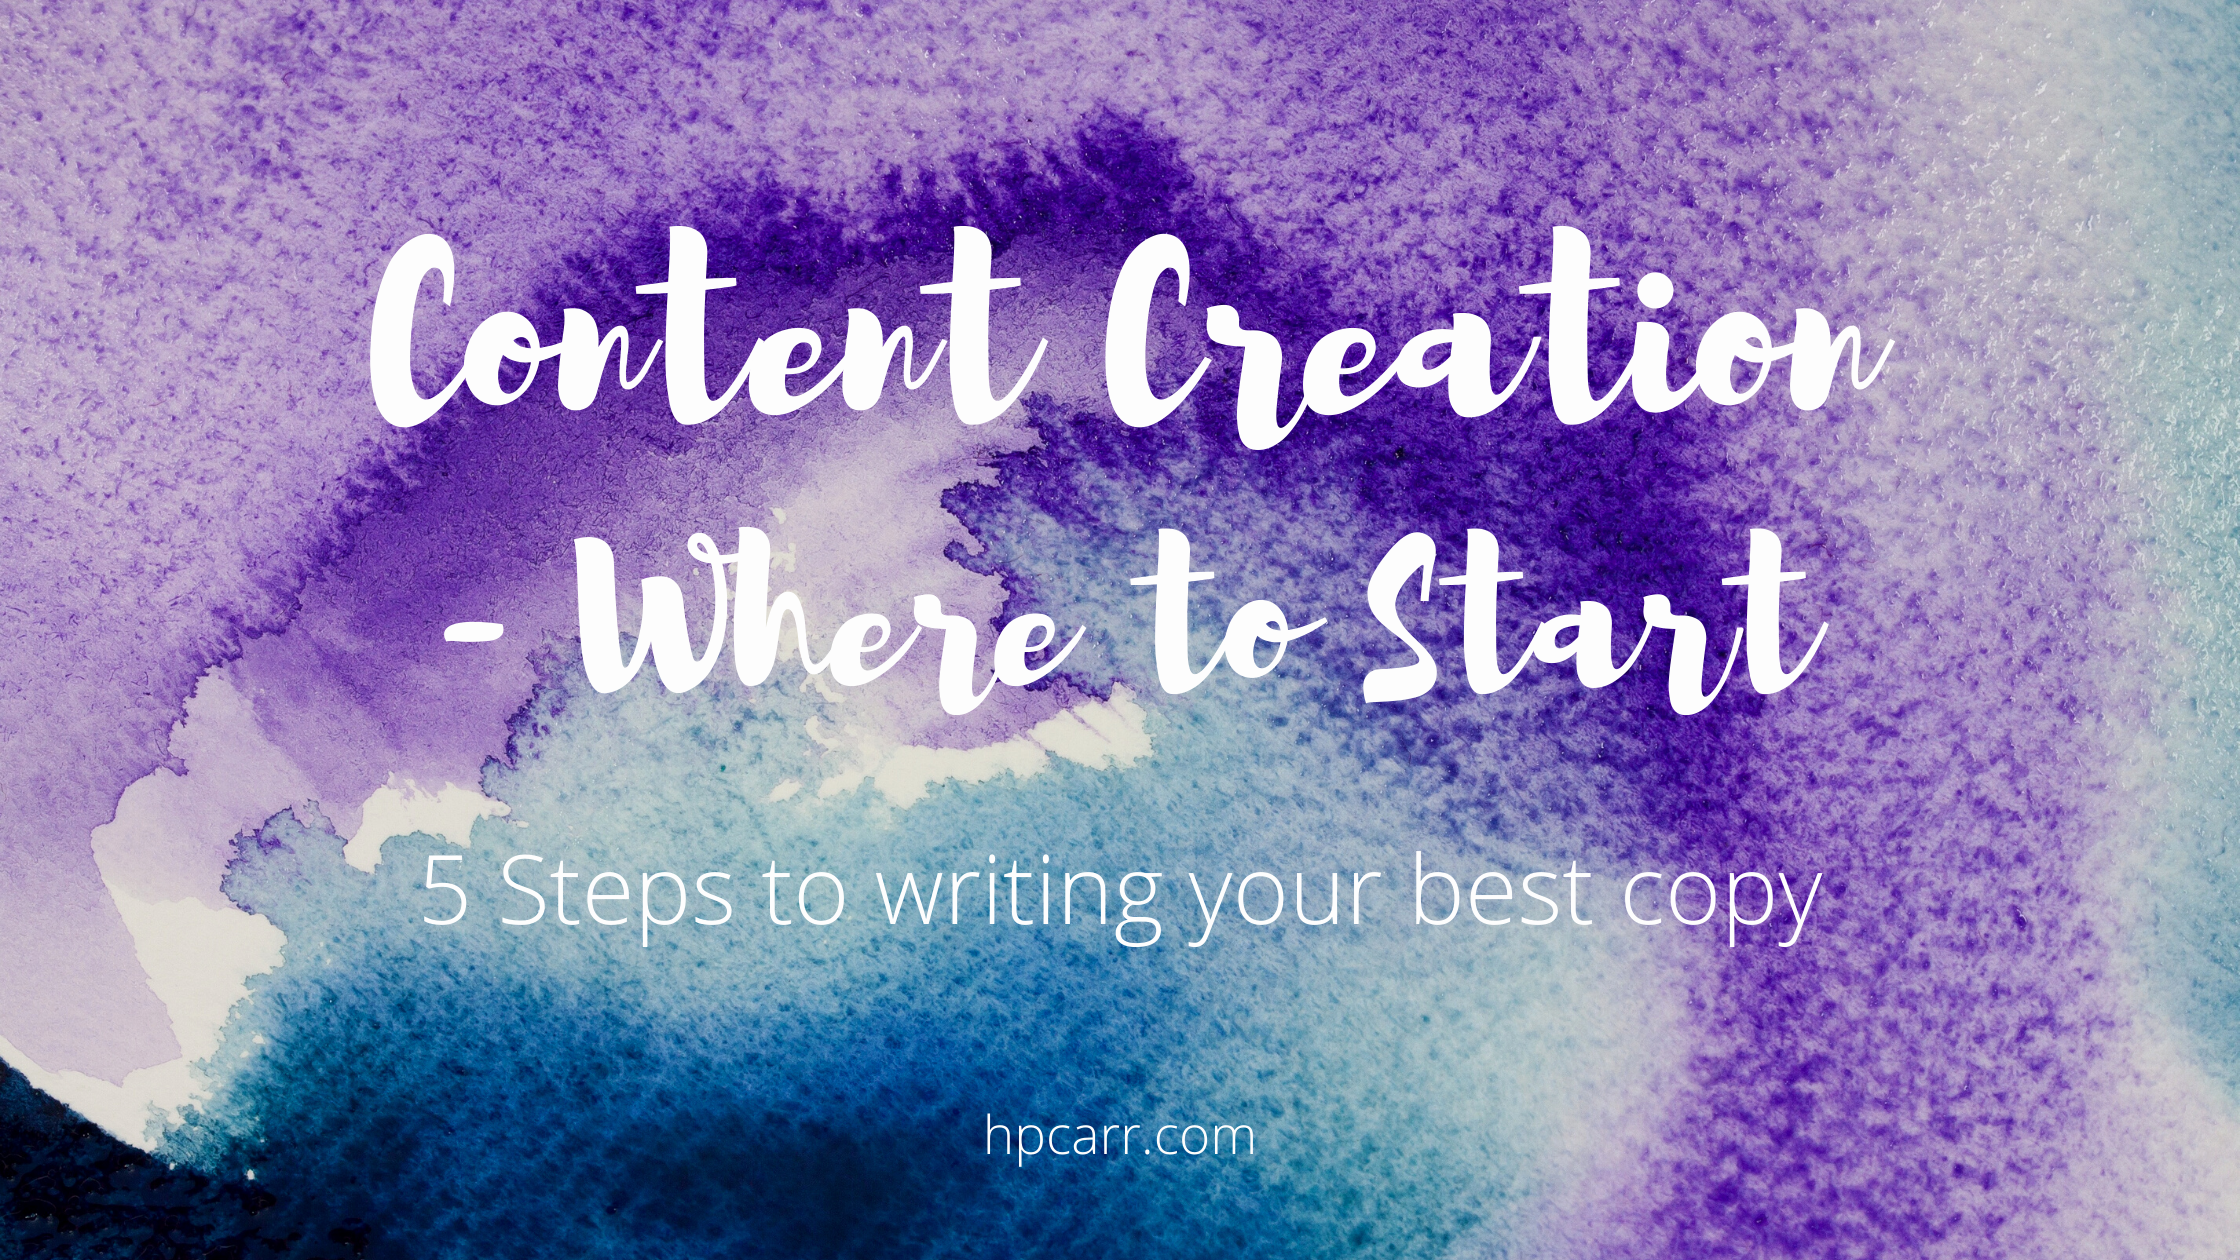 Content Creation - where to start writing the best copy